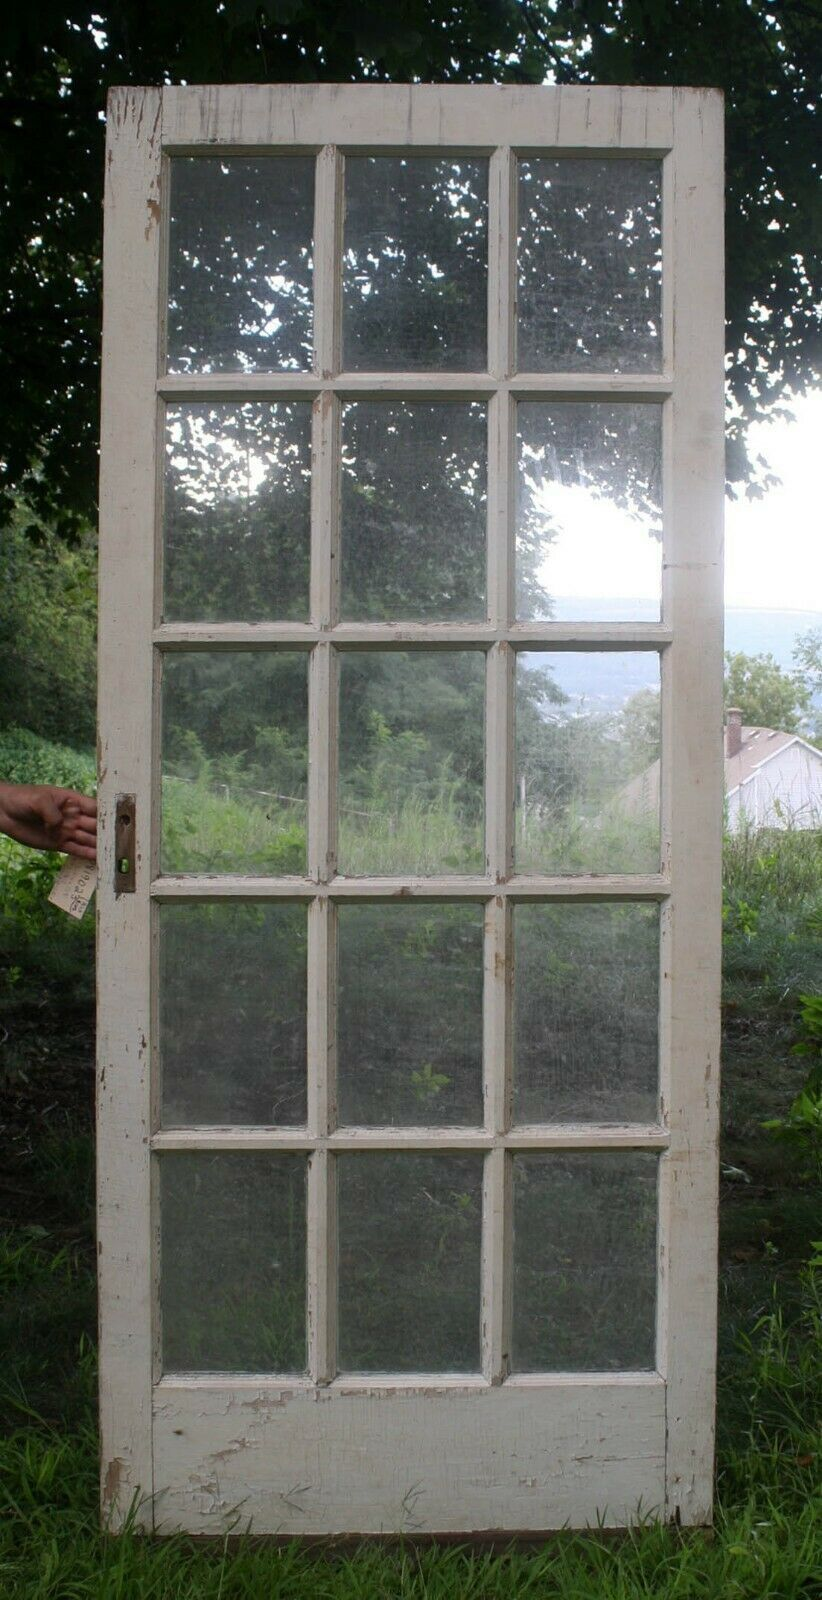 32 X77 Vintage Antique Solid Wood Wooden French Door 15 Window Glass Lite Pane French Doors Vintage French Doors Wooden French Doors